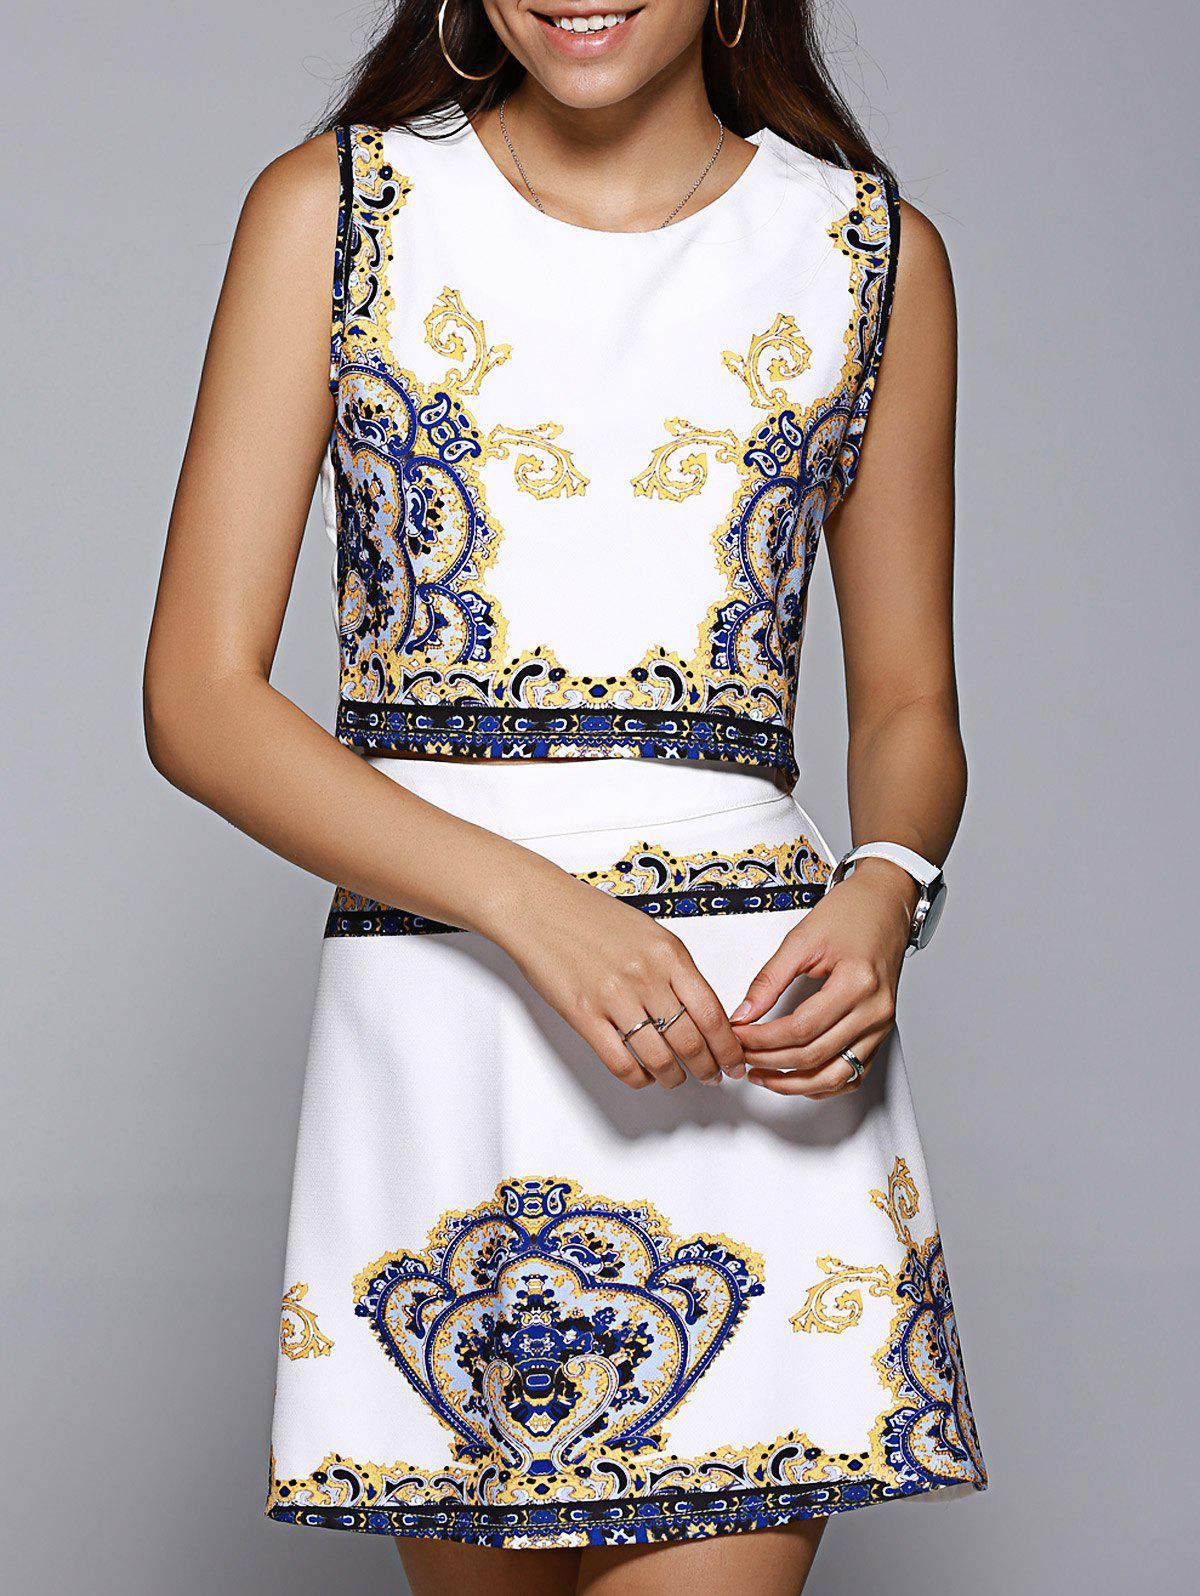 Stylish Printed Round Collar Tank Top + Slimming High-Waisted Skirt Women's Twinset